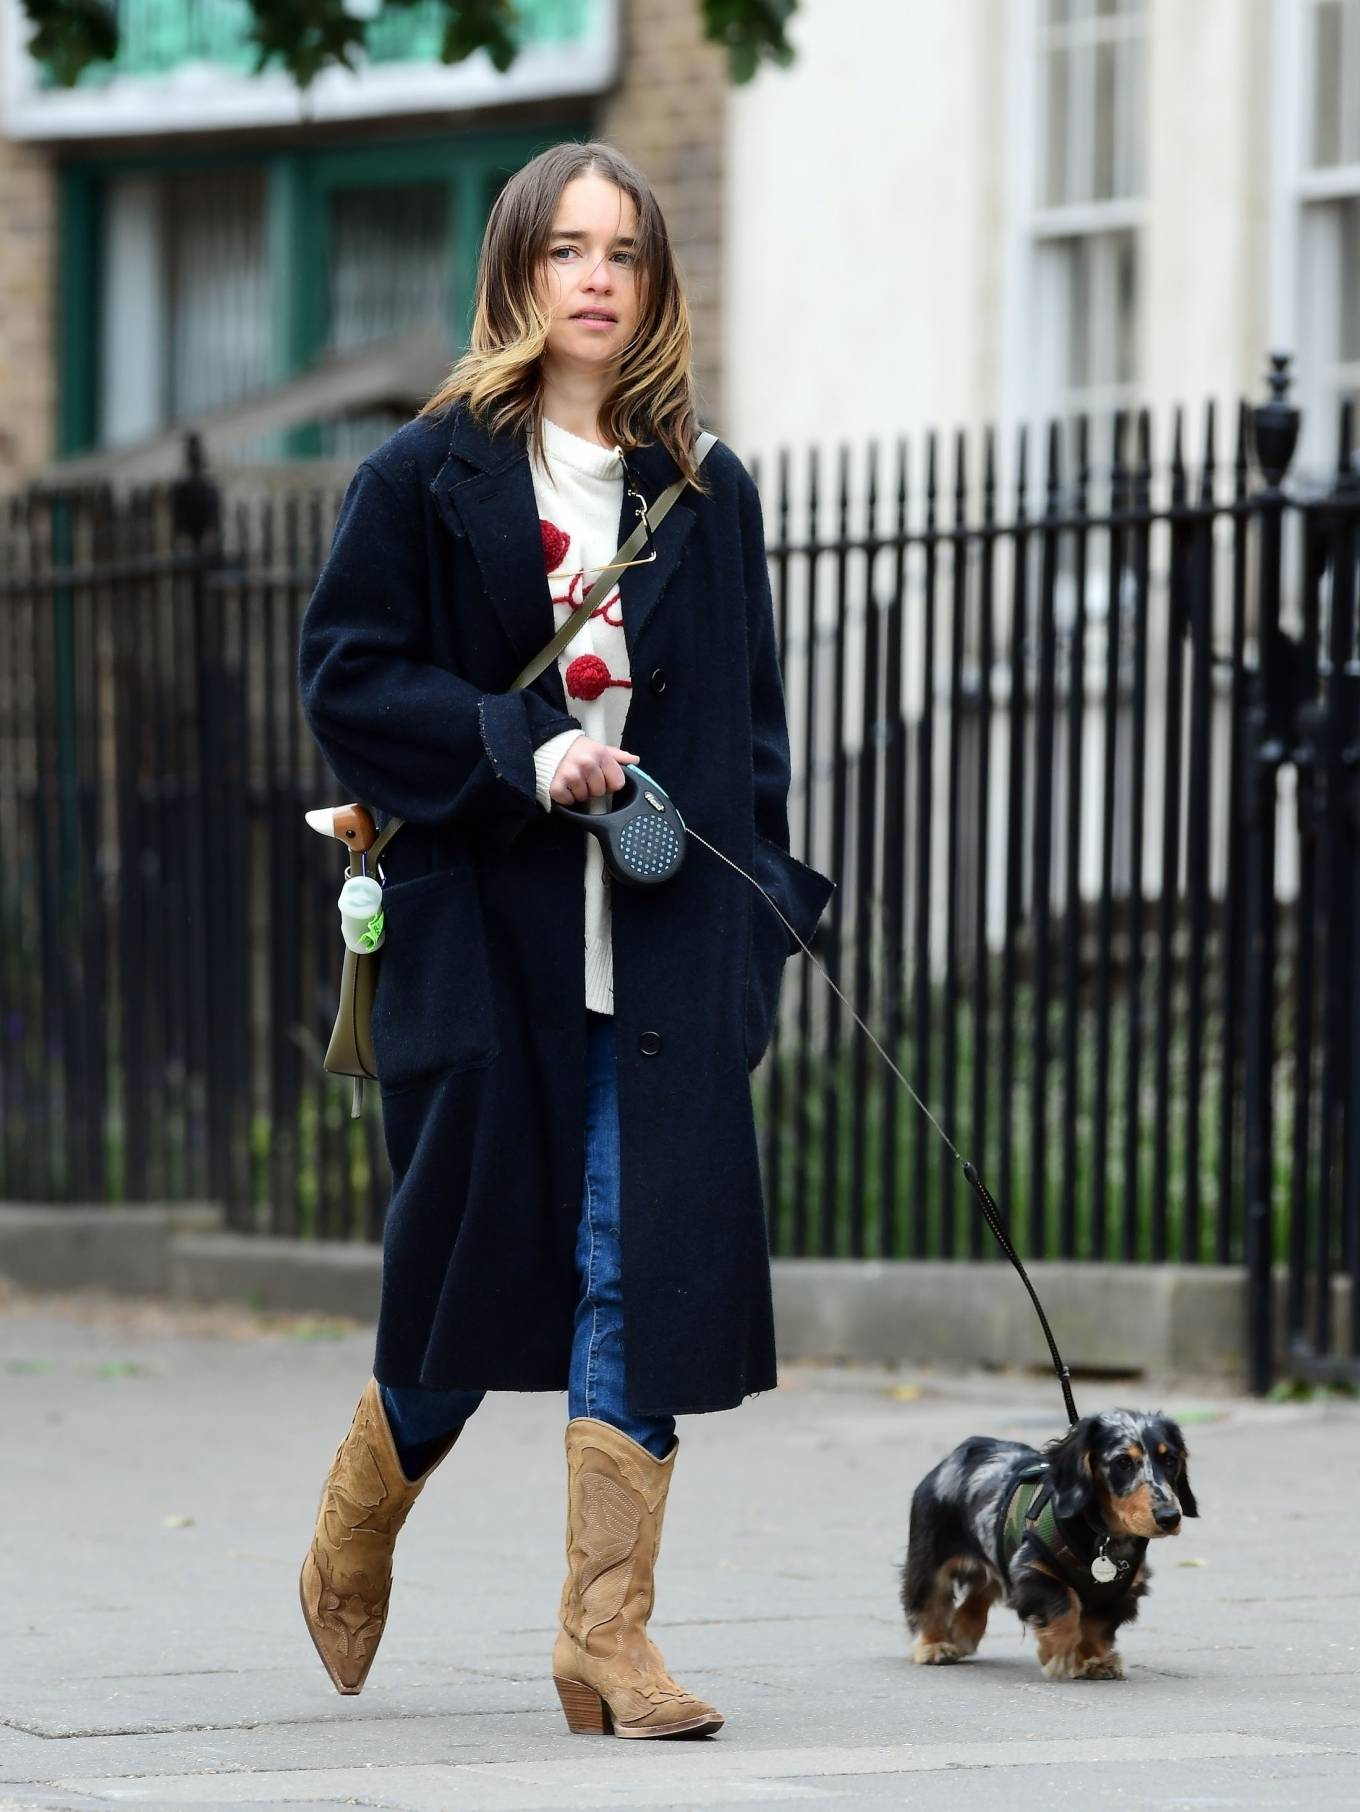 Emilia Clarke - Walking her dog as they visiting the park in London